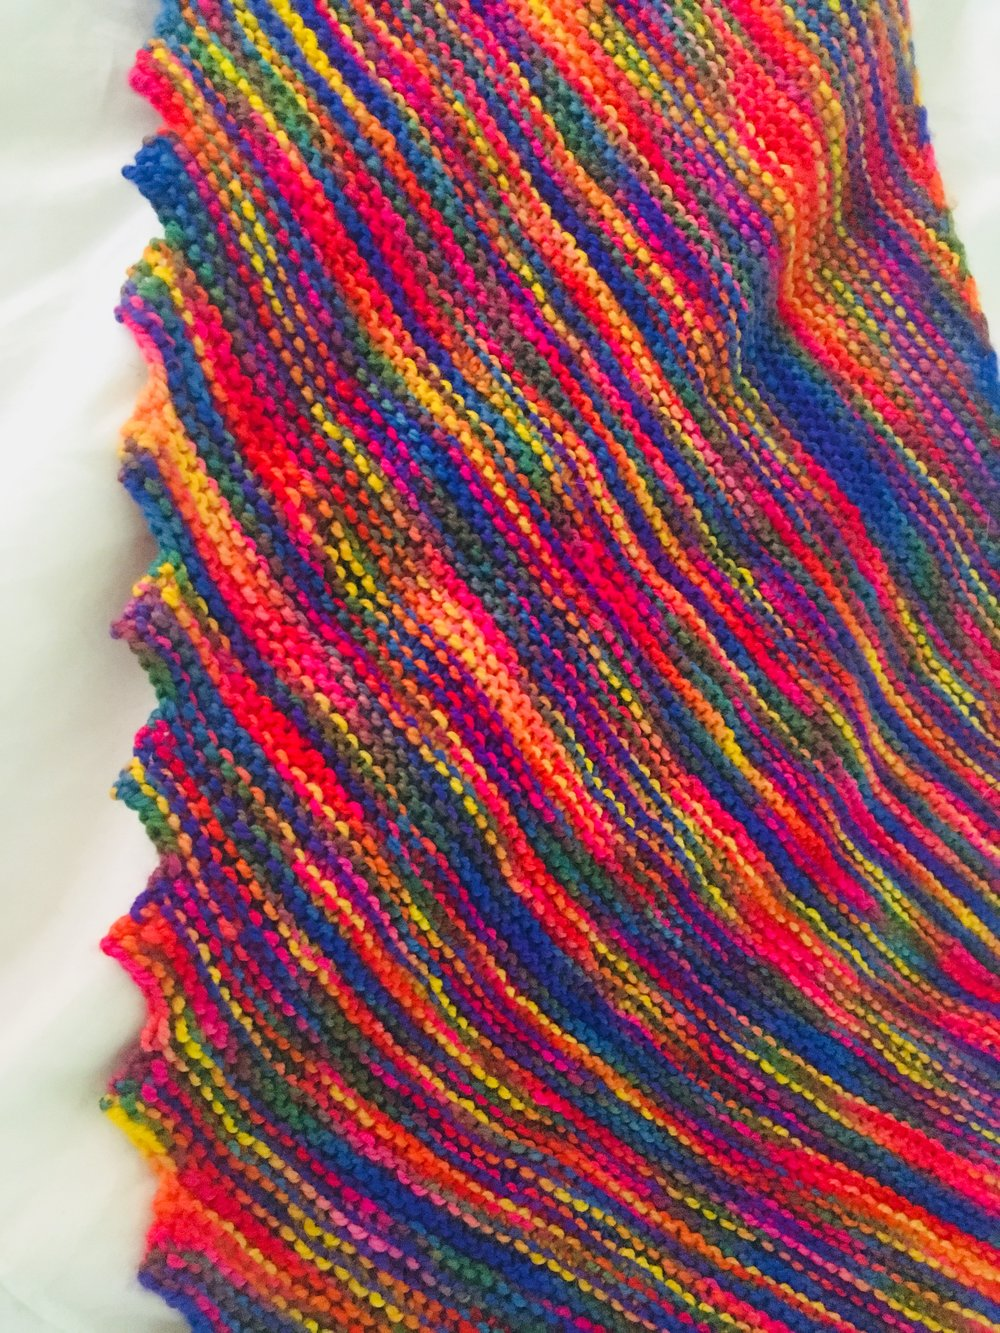 hitchhiker shawl detail.jpg